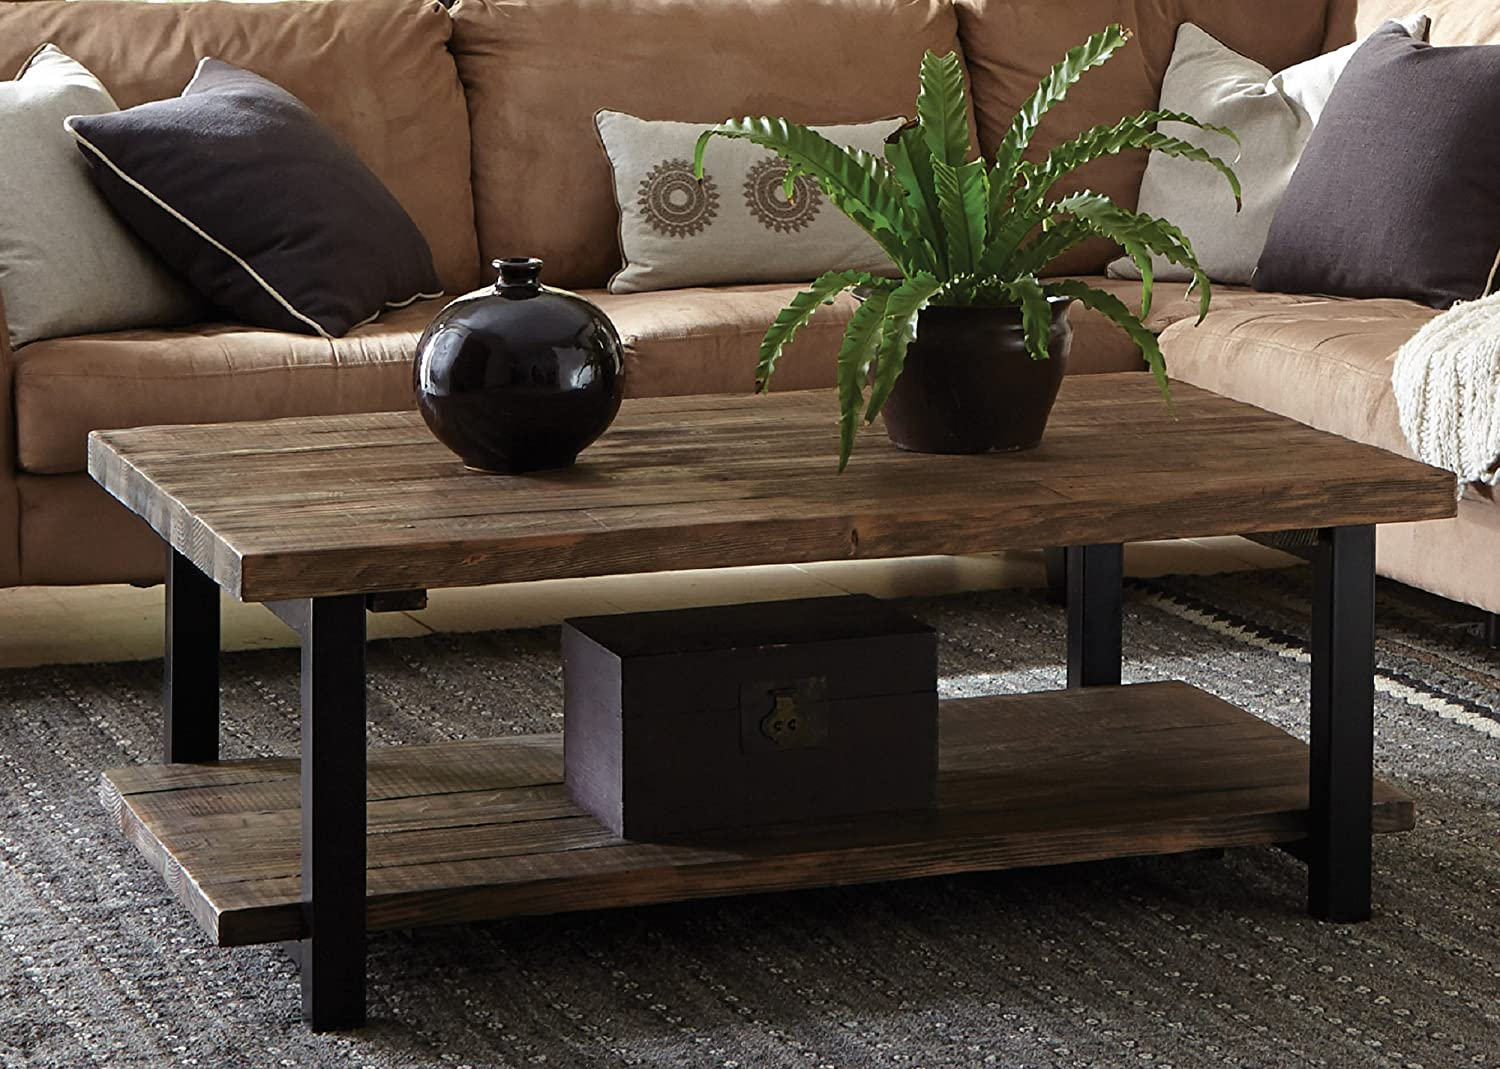 The 5 Best Coffee Tables In 2018: Reviews & Buying Guide 12